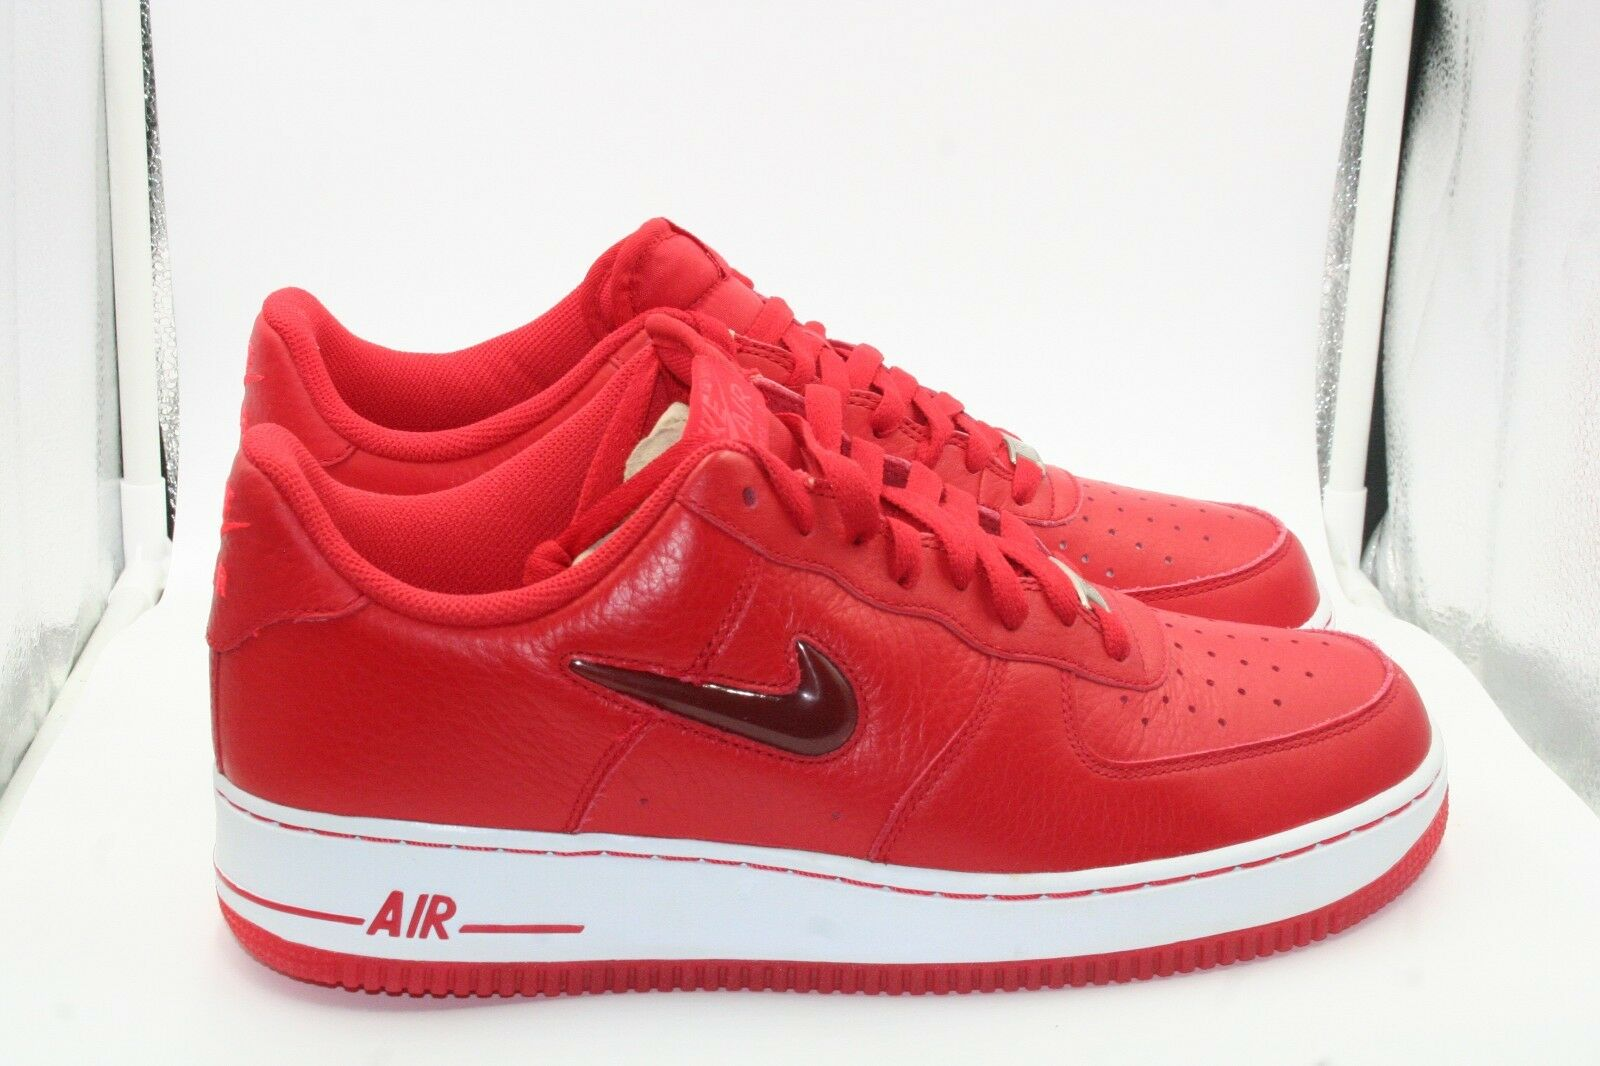 7ec43cf164 Nike Nike Nike Air Force 1 Low Jewel Check Swoosh Sport Red White DS Size  10.5